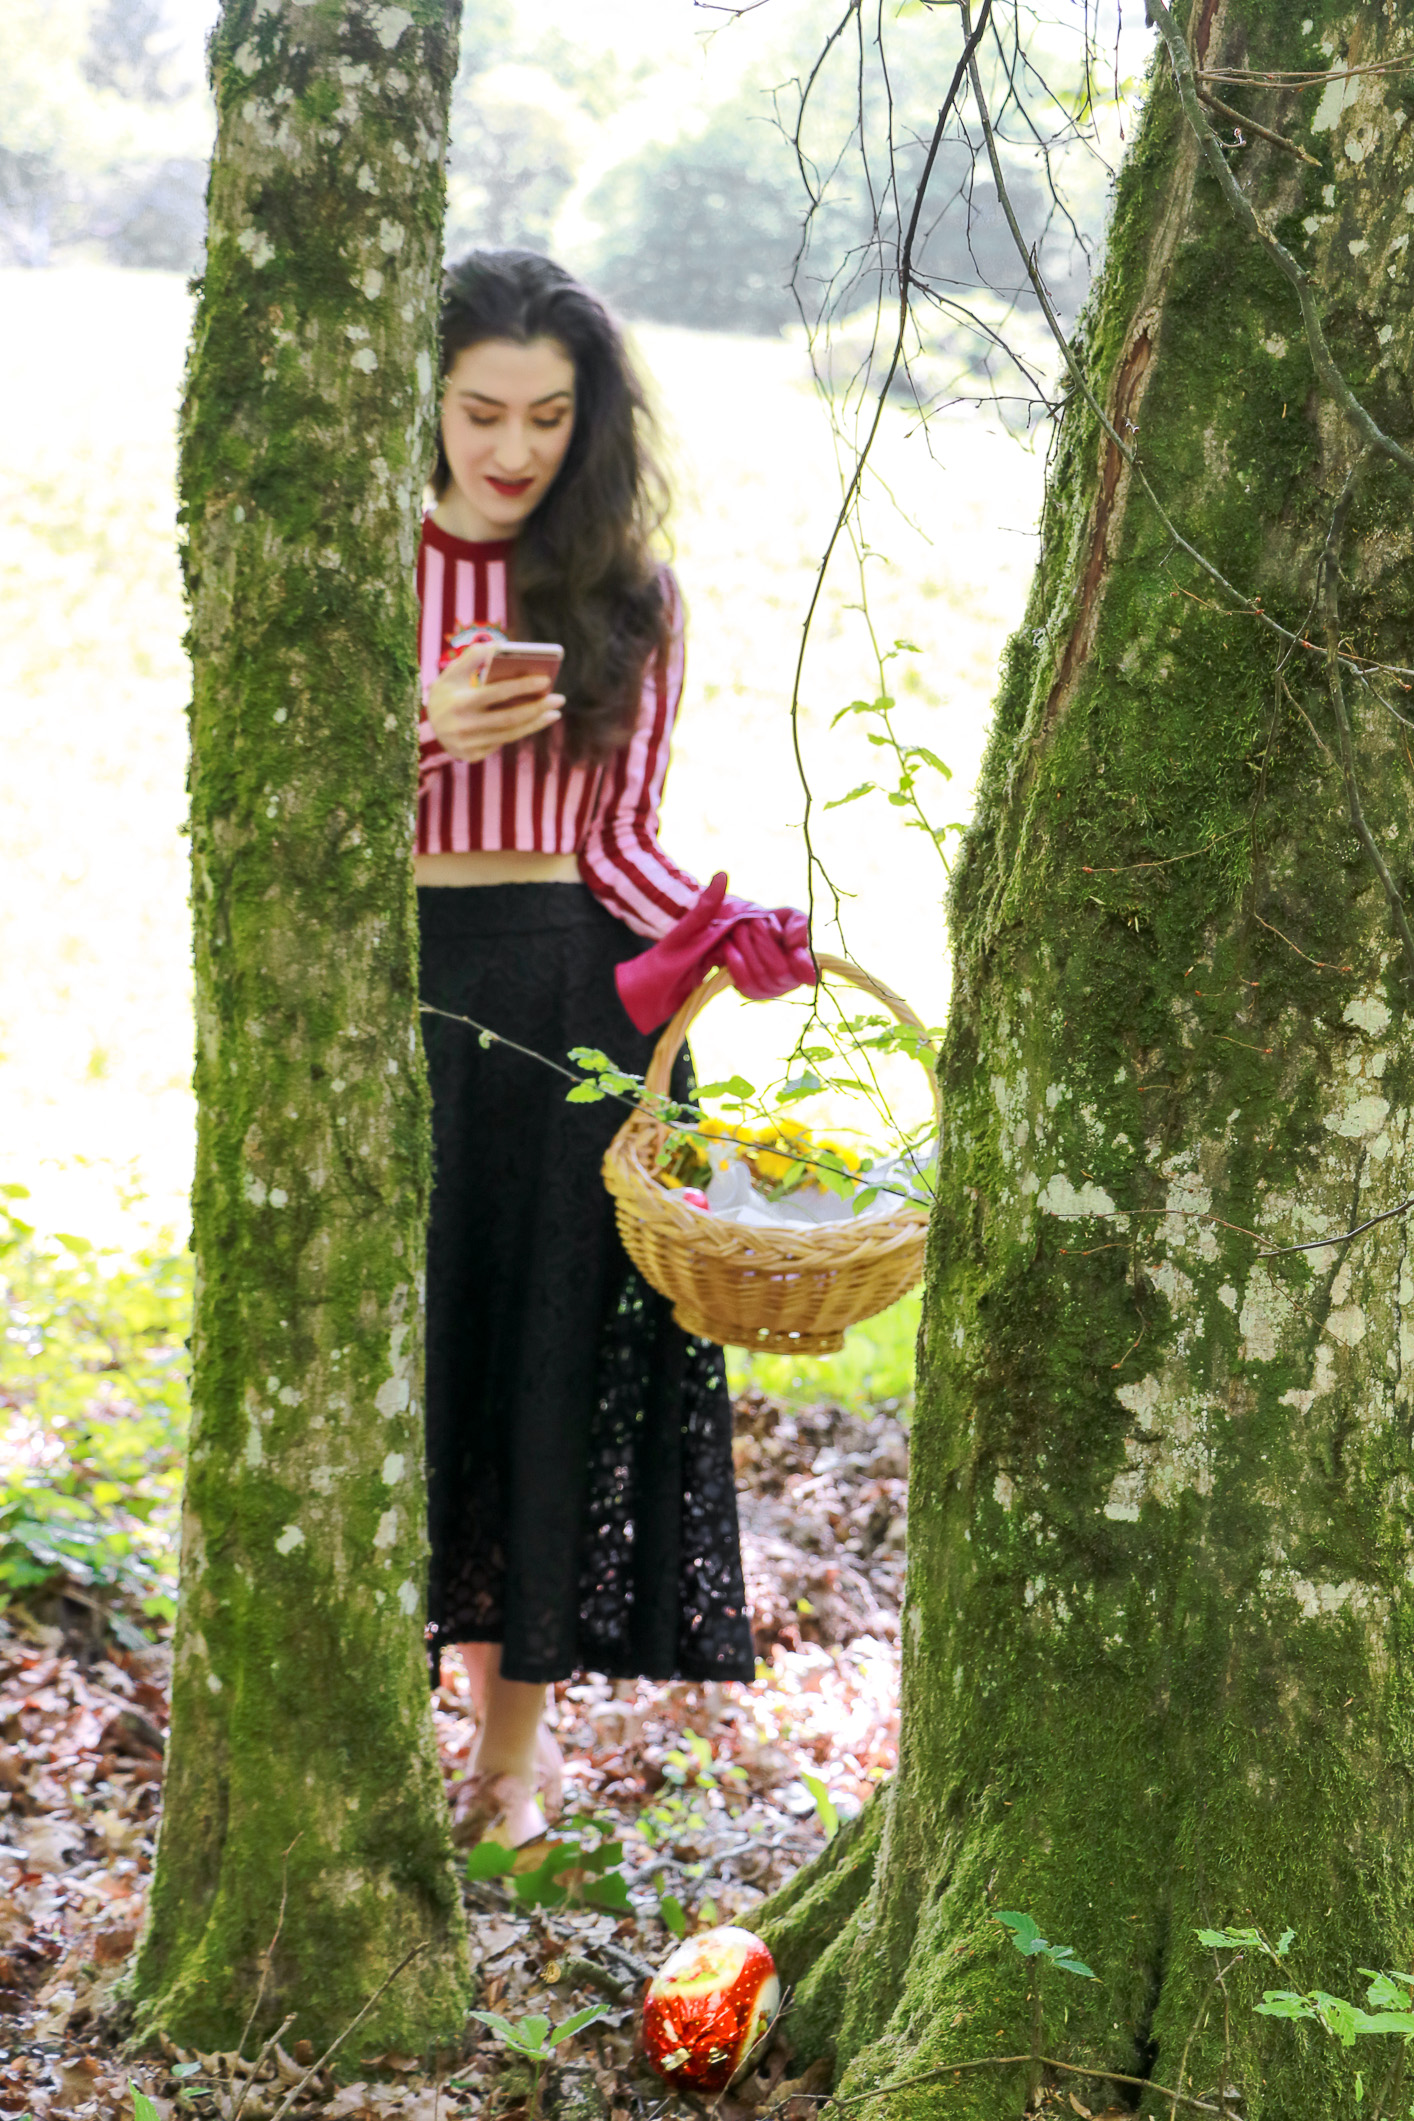 Fashion blogger Veronika Lipar of Brunette From Wall Street on how to wear pink and red striped cropped top, black midi skirt and pink pale sneakers for Easter Egg hunt